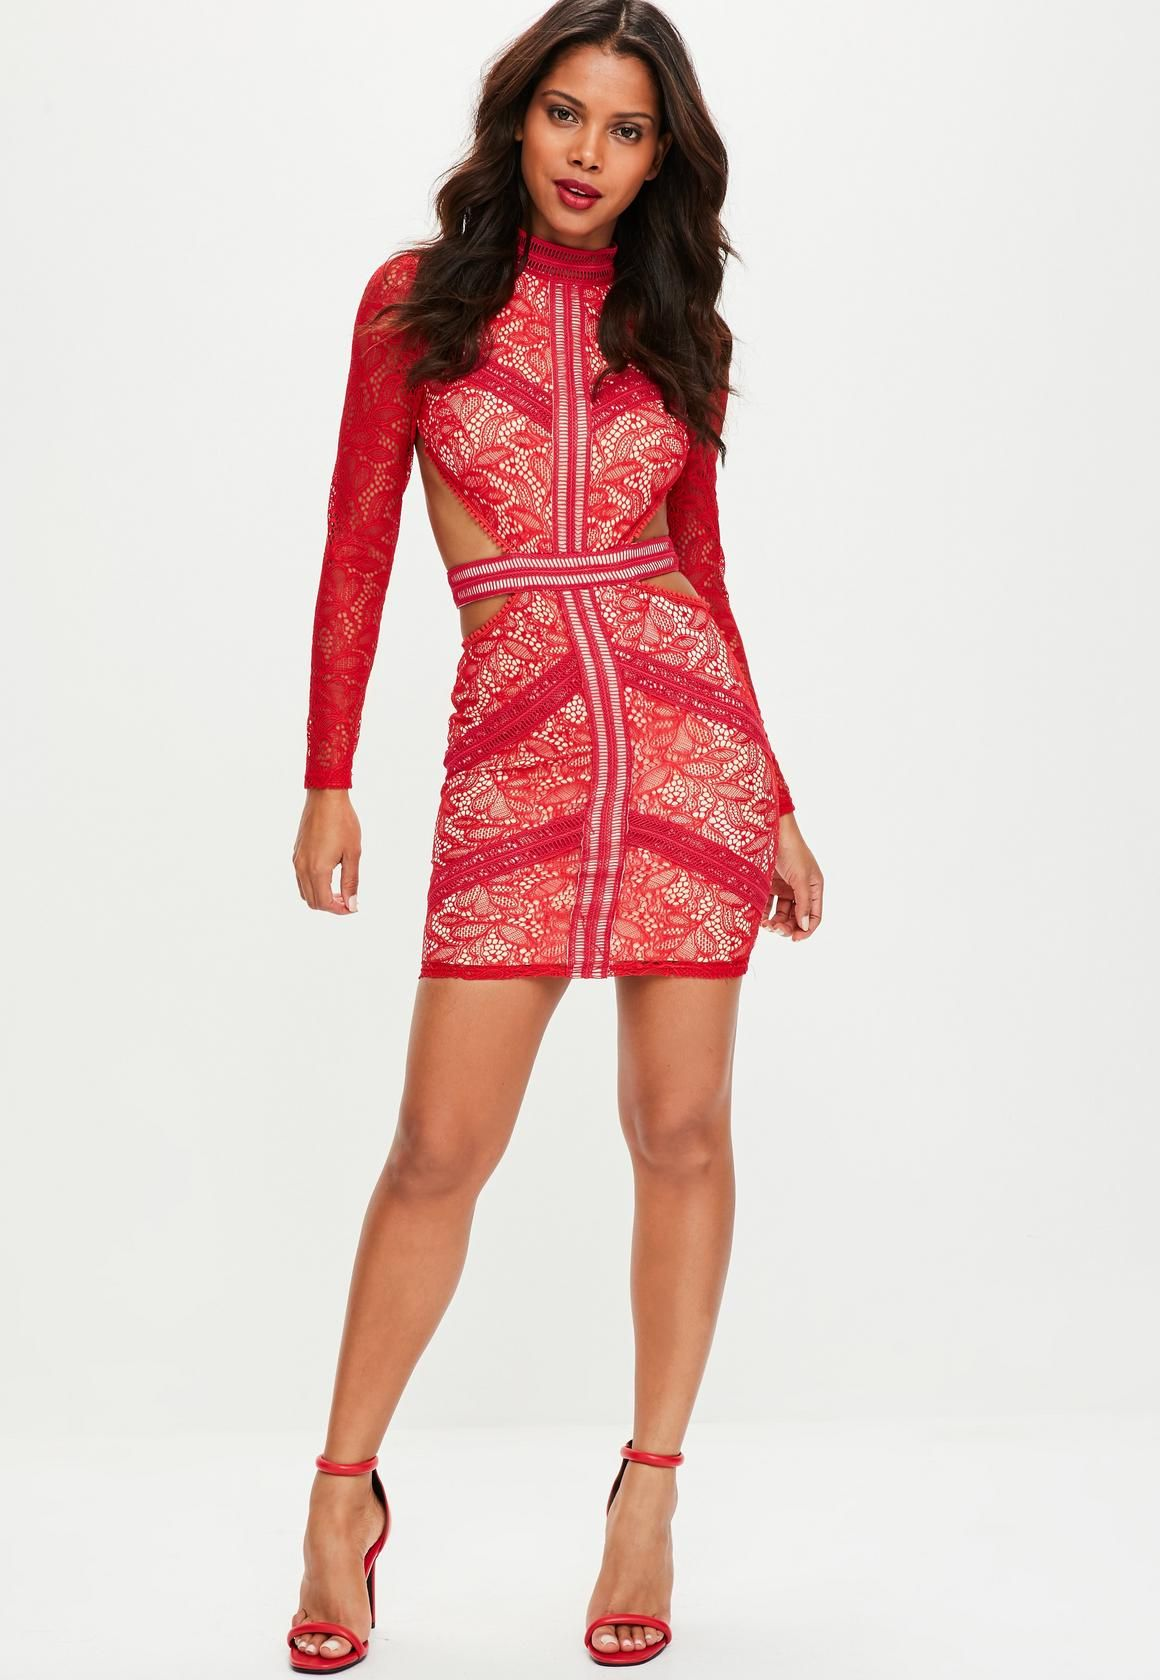 High Neck Lace Cocktail Dresses Backless